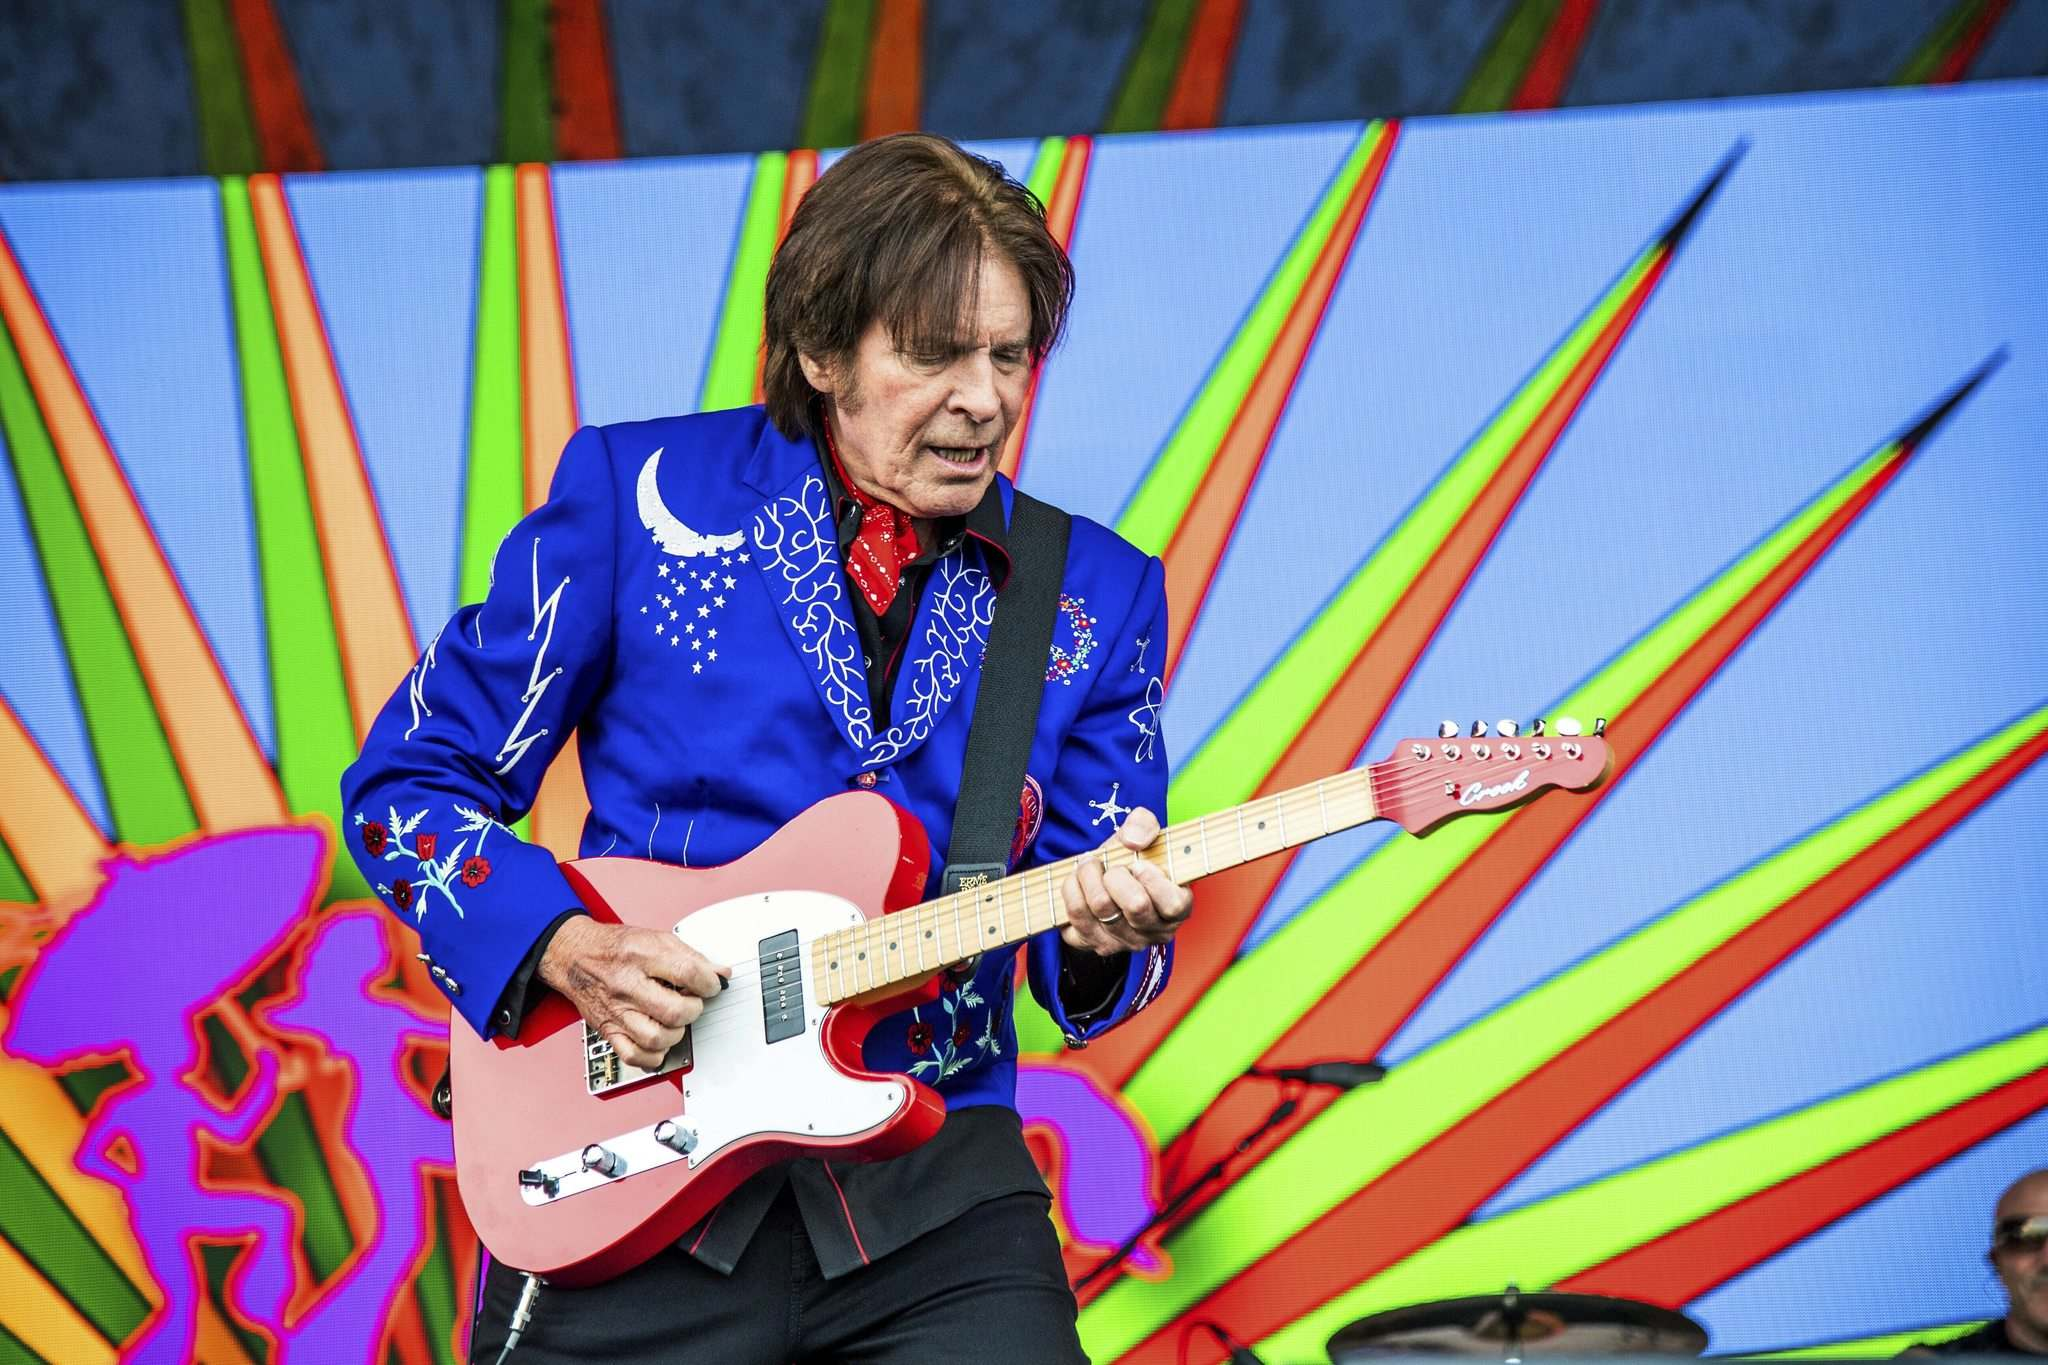 John Fogerty, who fronted Creedence Clearwater Revival before starting a solo career in 1973, will close out Dauphin's Countryfest next year. (Amy Harris / The Associated Press files)